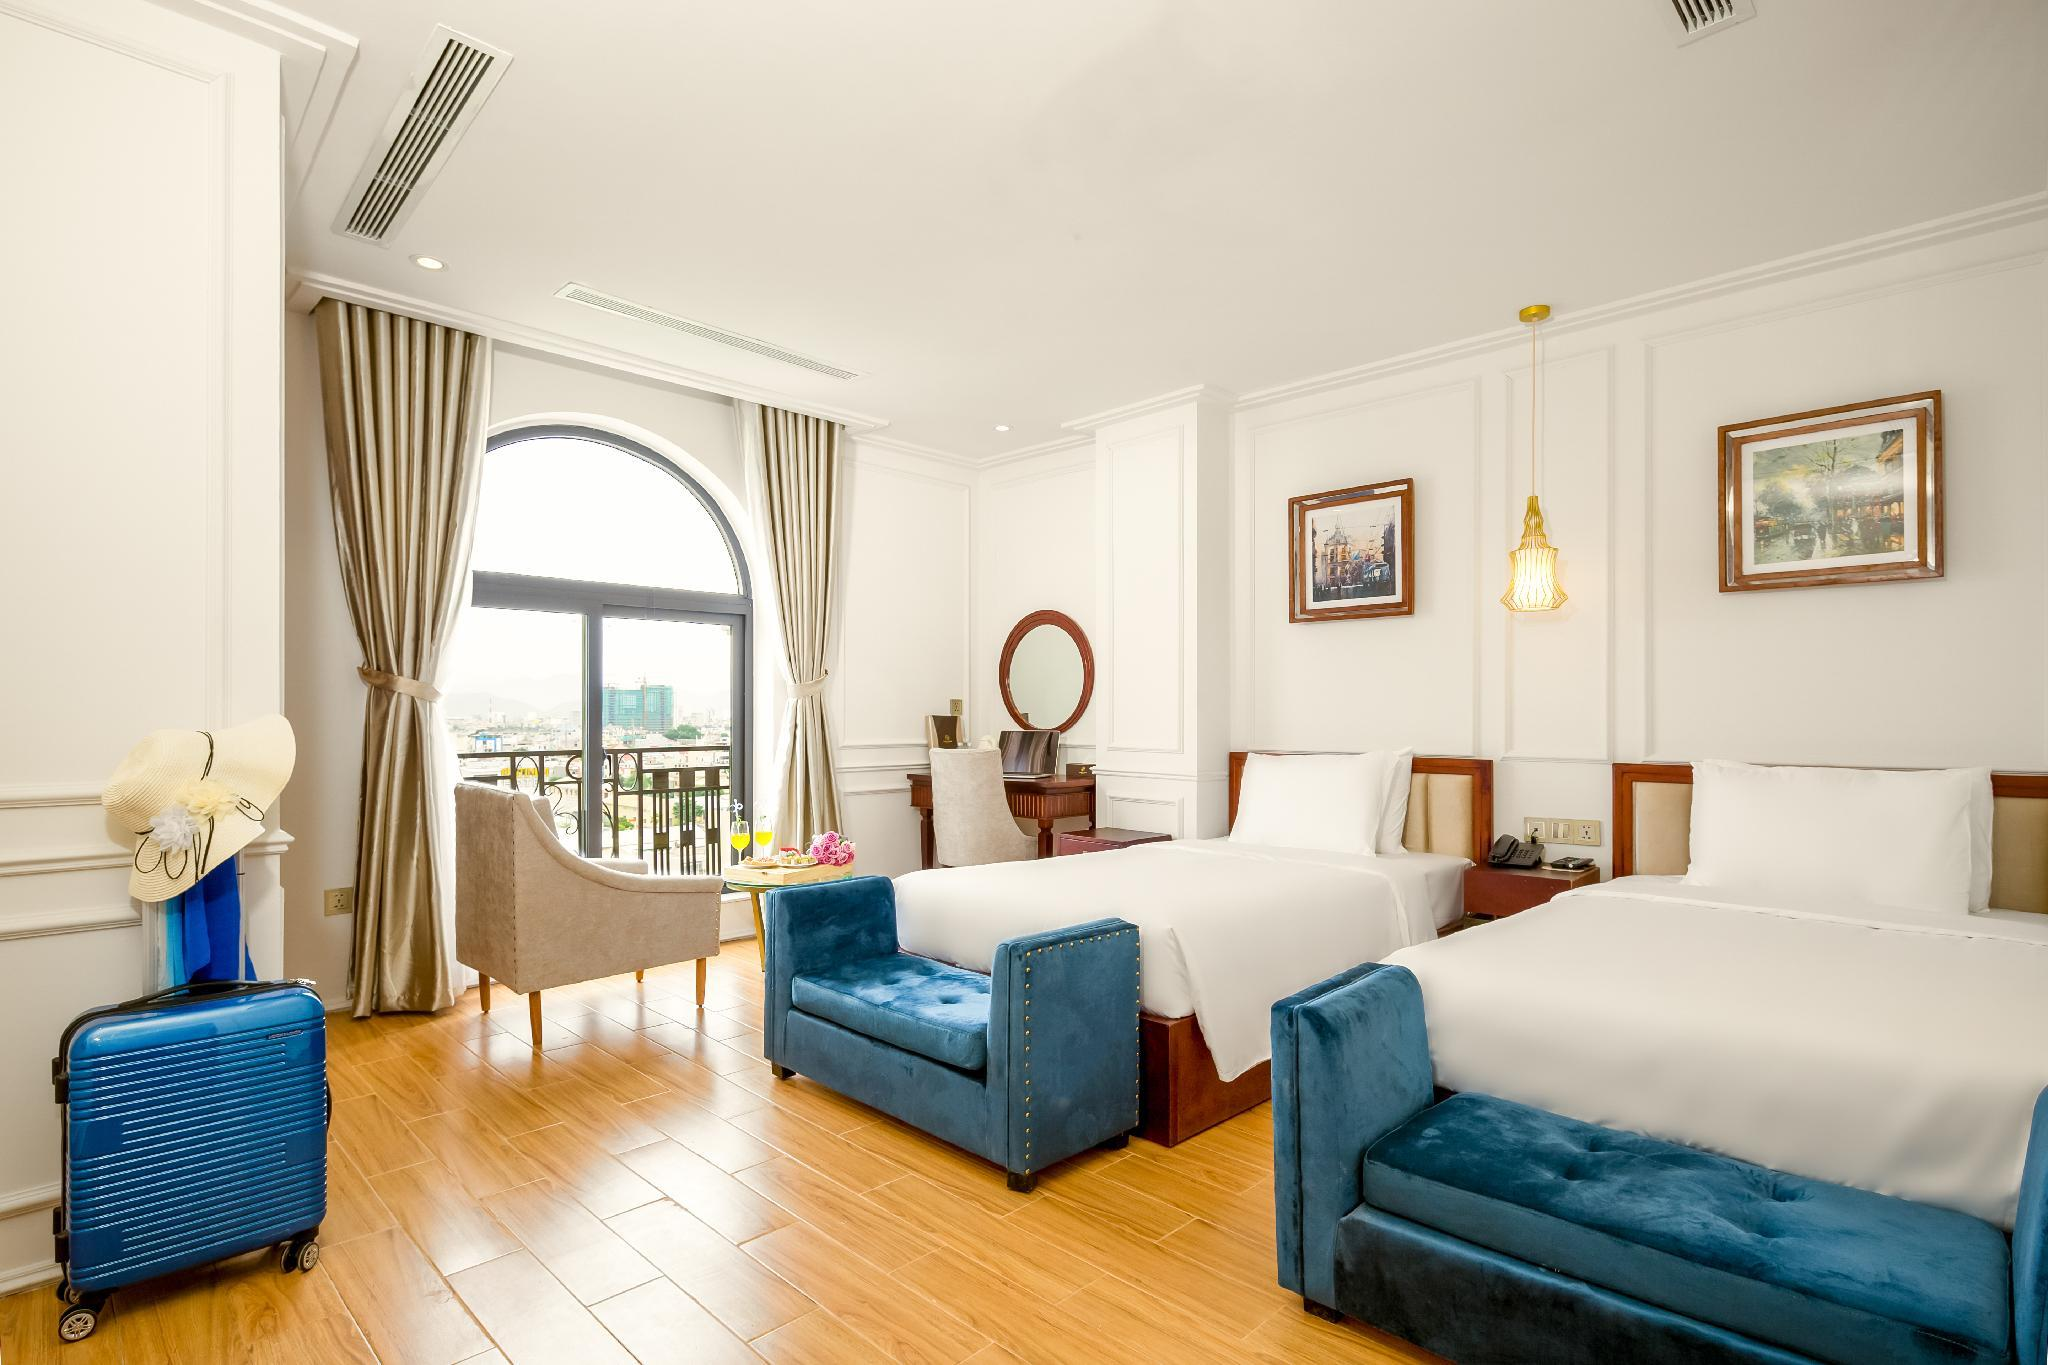 Deluxe 2 giường Hướng phố (Deluxe Twin City View)